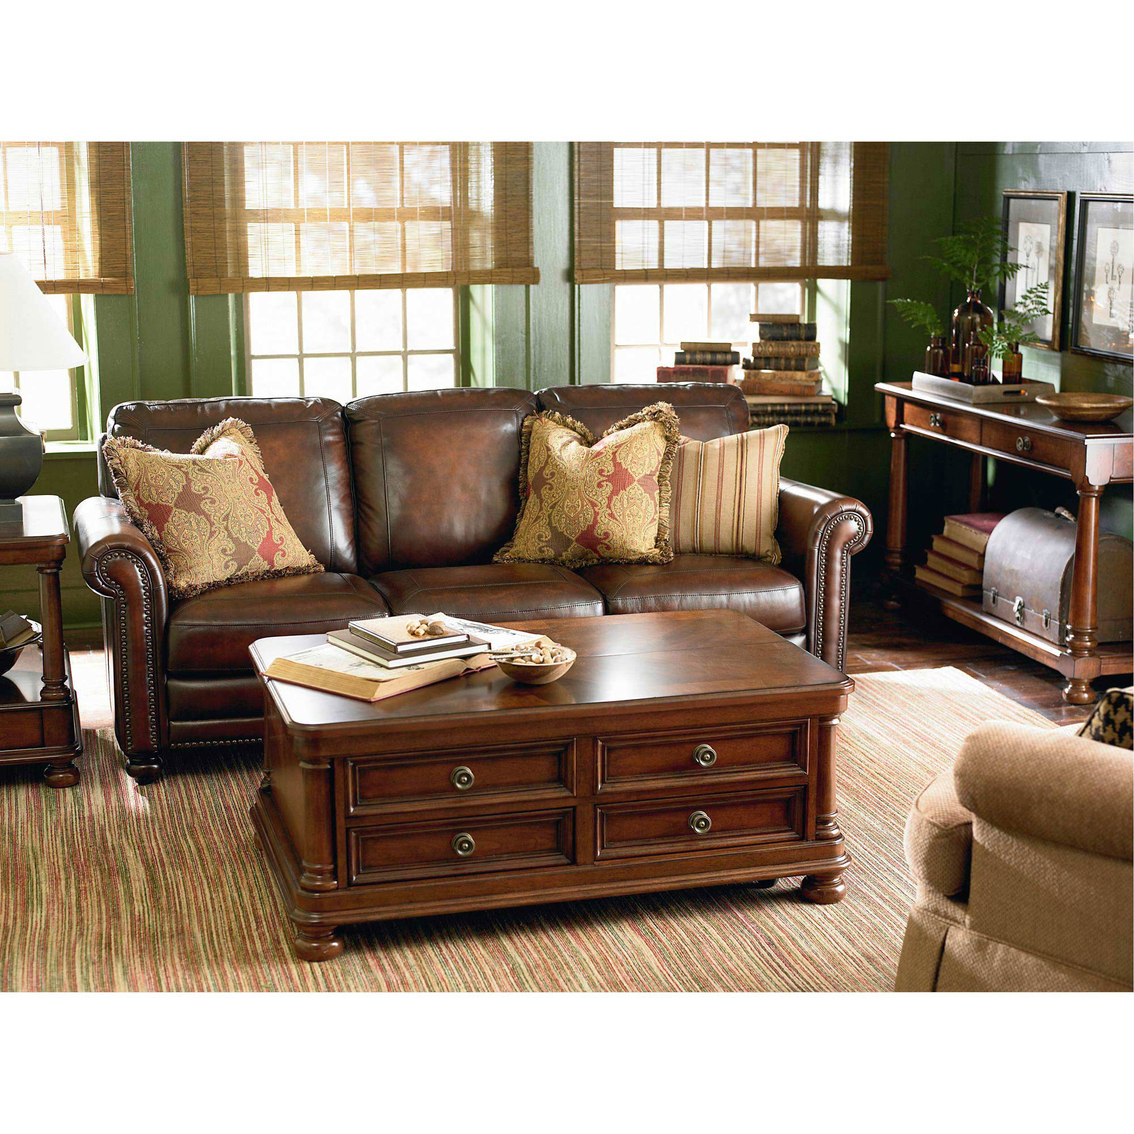 Bassett Hamilton 3 Pc. Living Room Set